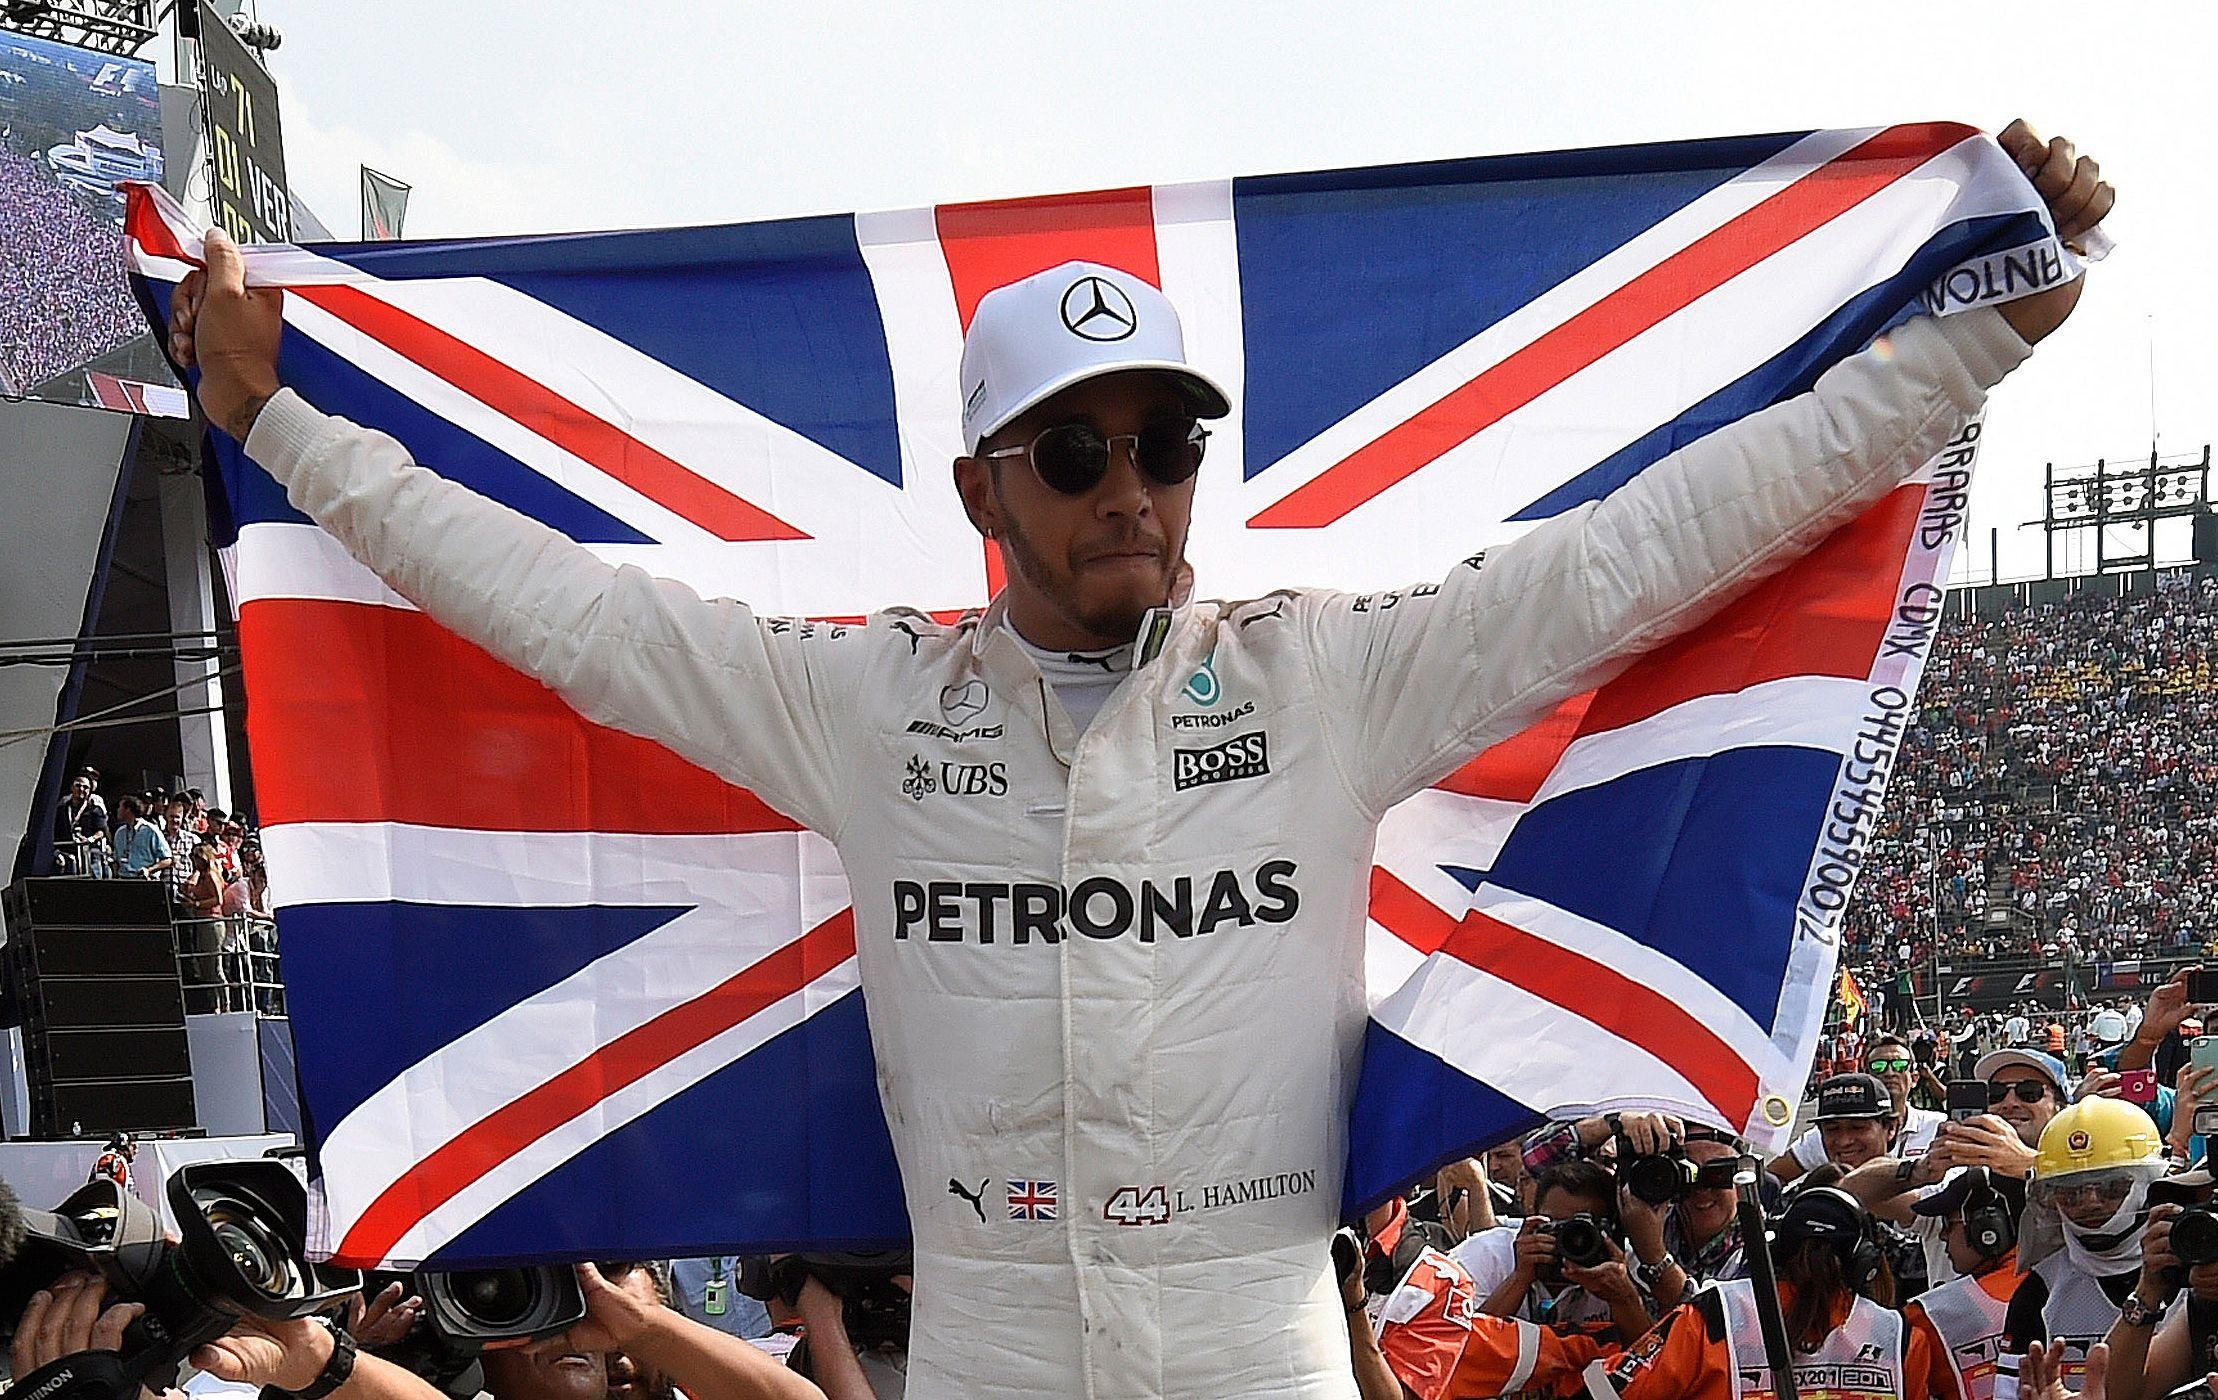 Lewis Hamilton celebrates as he wins his fourth world title at the Mexico Grand Prix last year